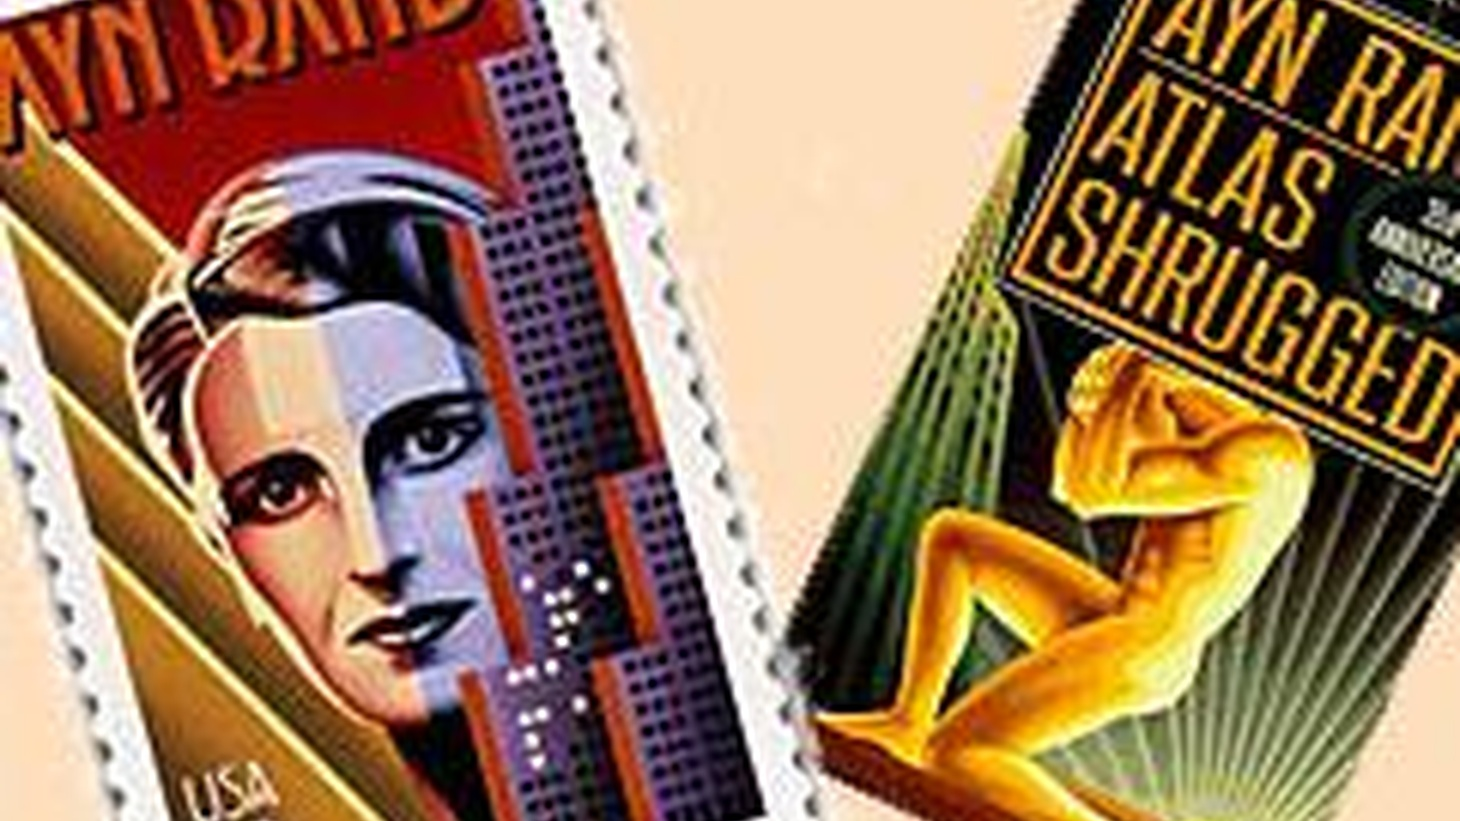 Hollywood's been sniffing around Atlas Shrugged since Ayn Rand published it in 1957. So why hasn't it been made into a movie? We talk to the first guy to get the go-ahead from Rand -- in 1974.